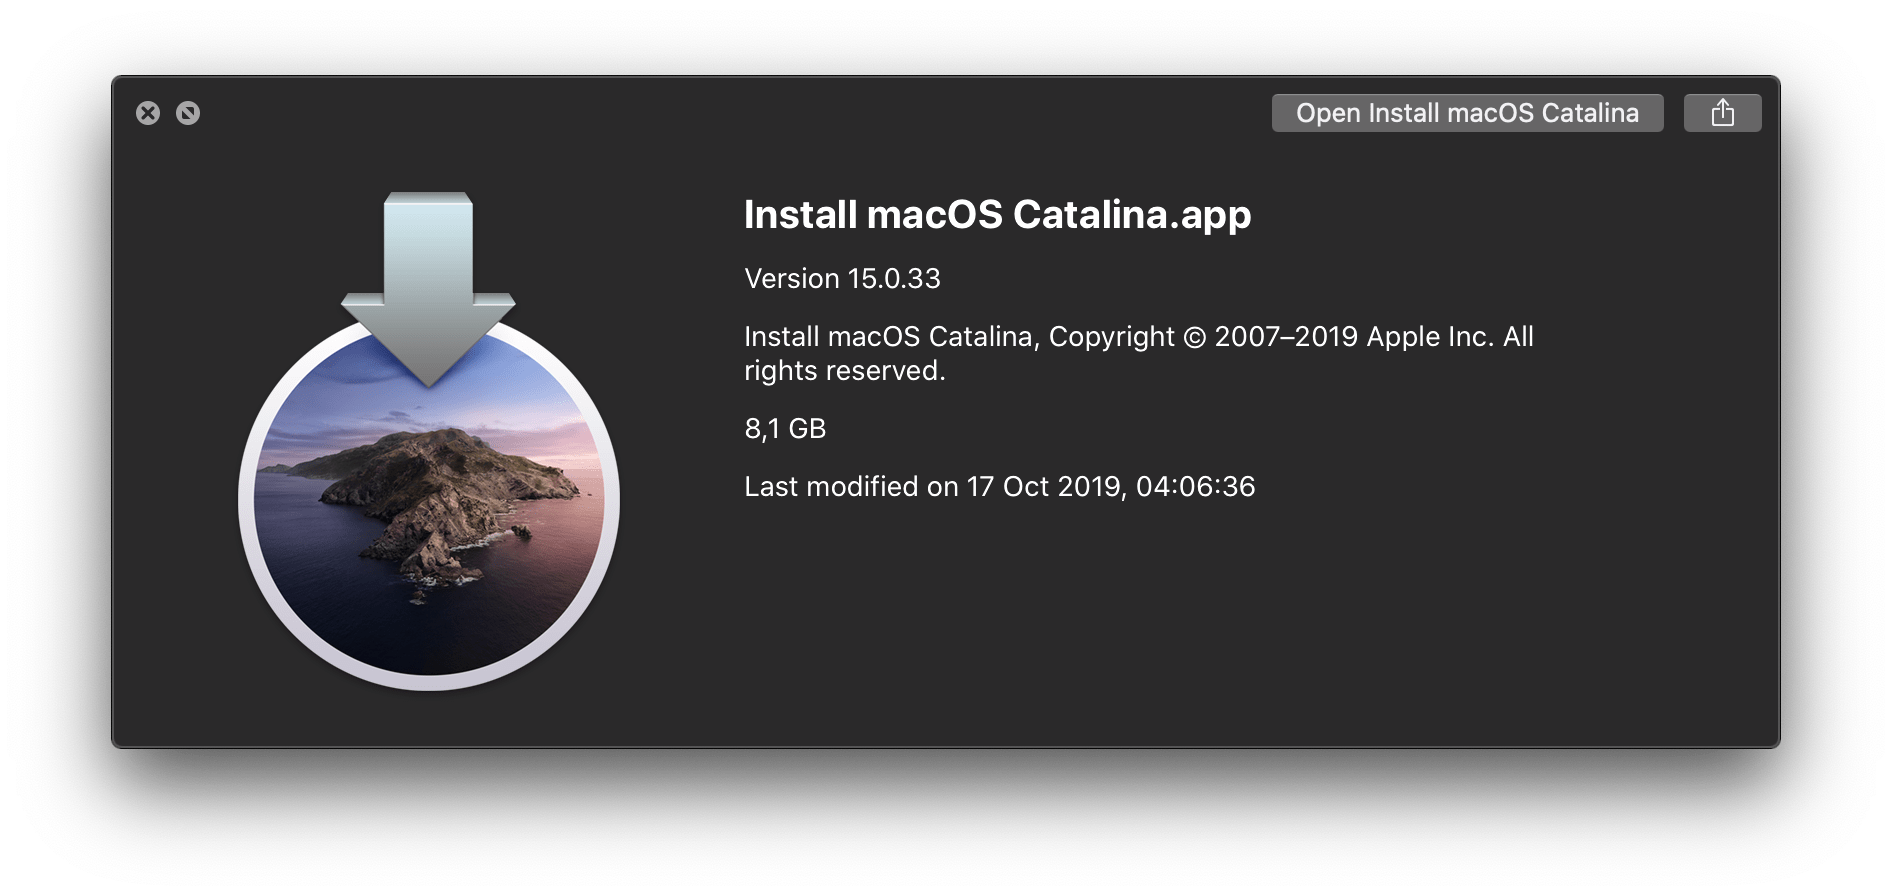 How to create a bootable USB drive with macOS Catalina installer